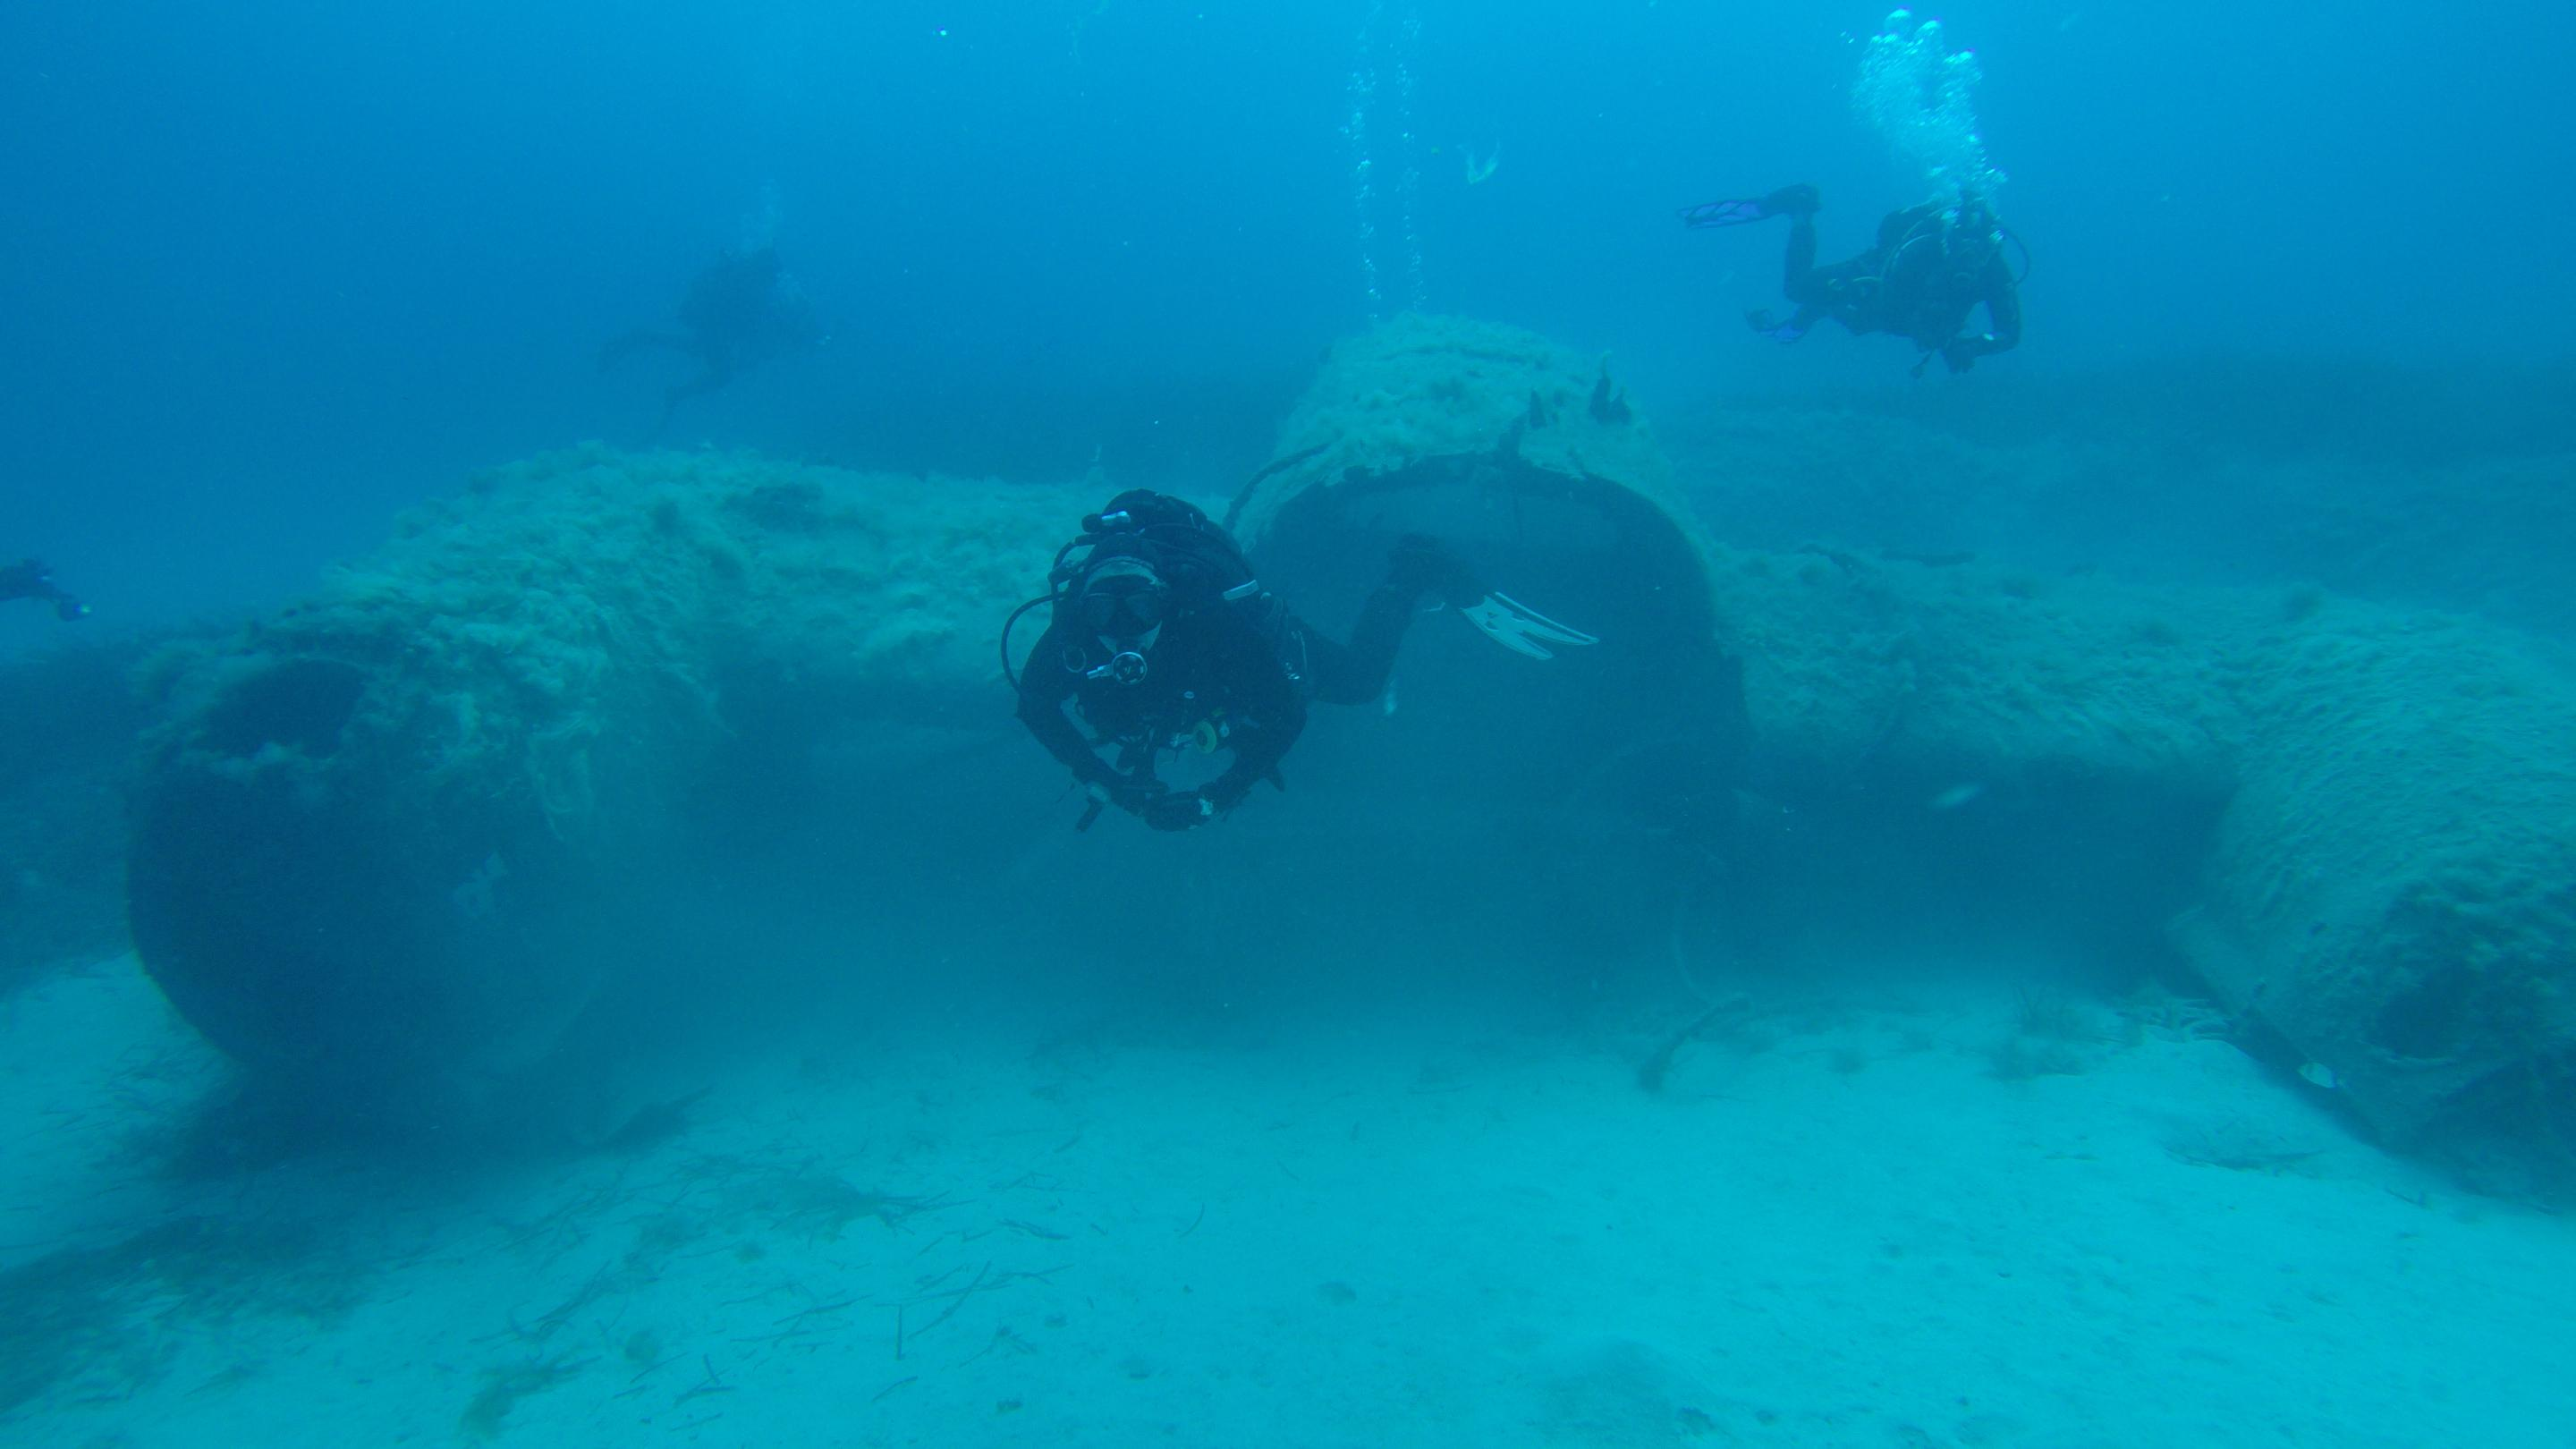 Divers at Lockheed Neptune wreck